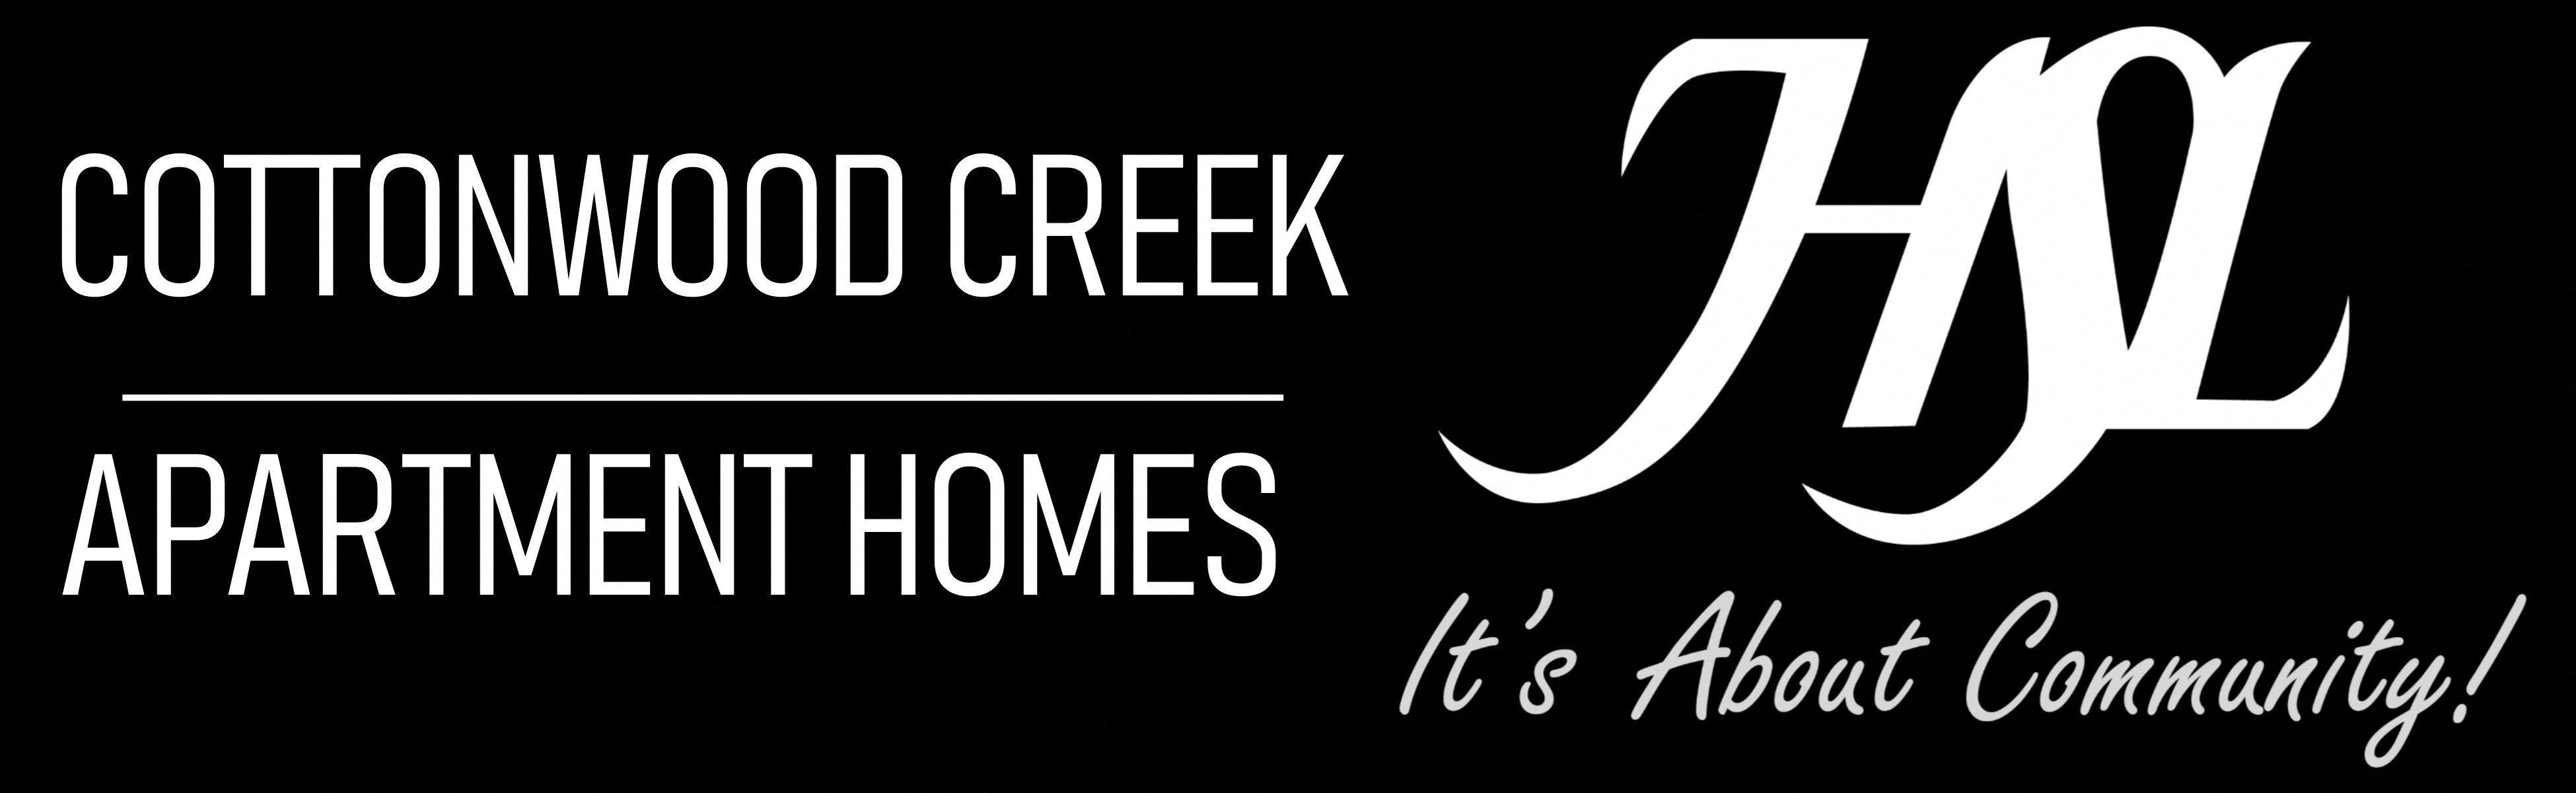 Cottonwood Creek Logo